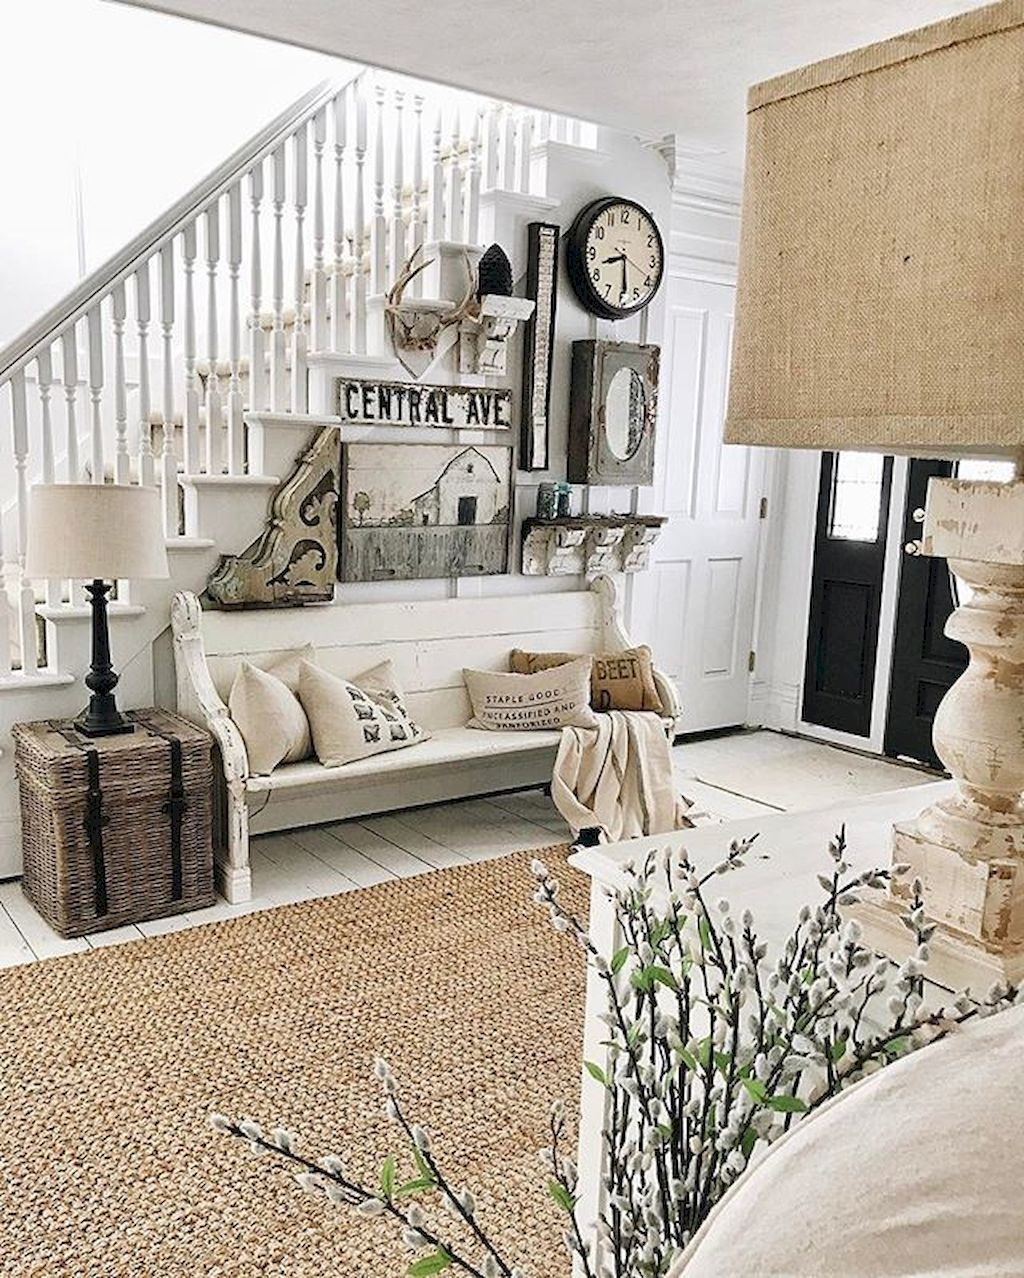 Cool 50 Farmhouse Mudroom Bench Decorating Ideas https